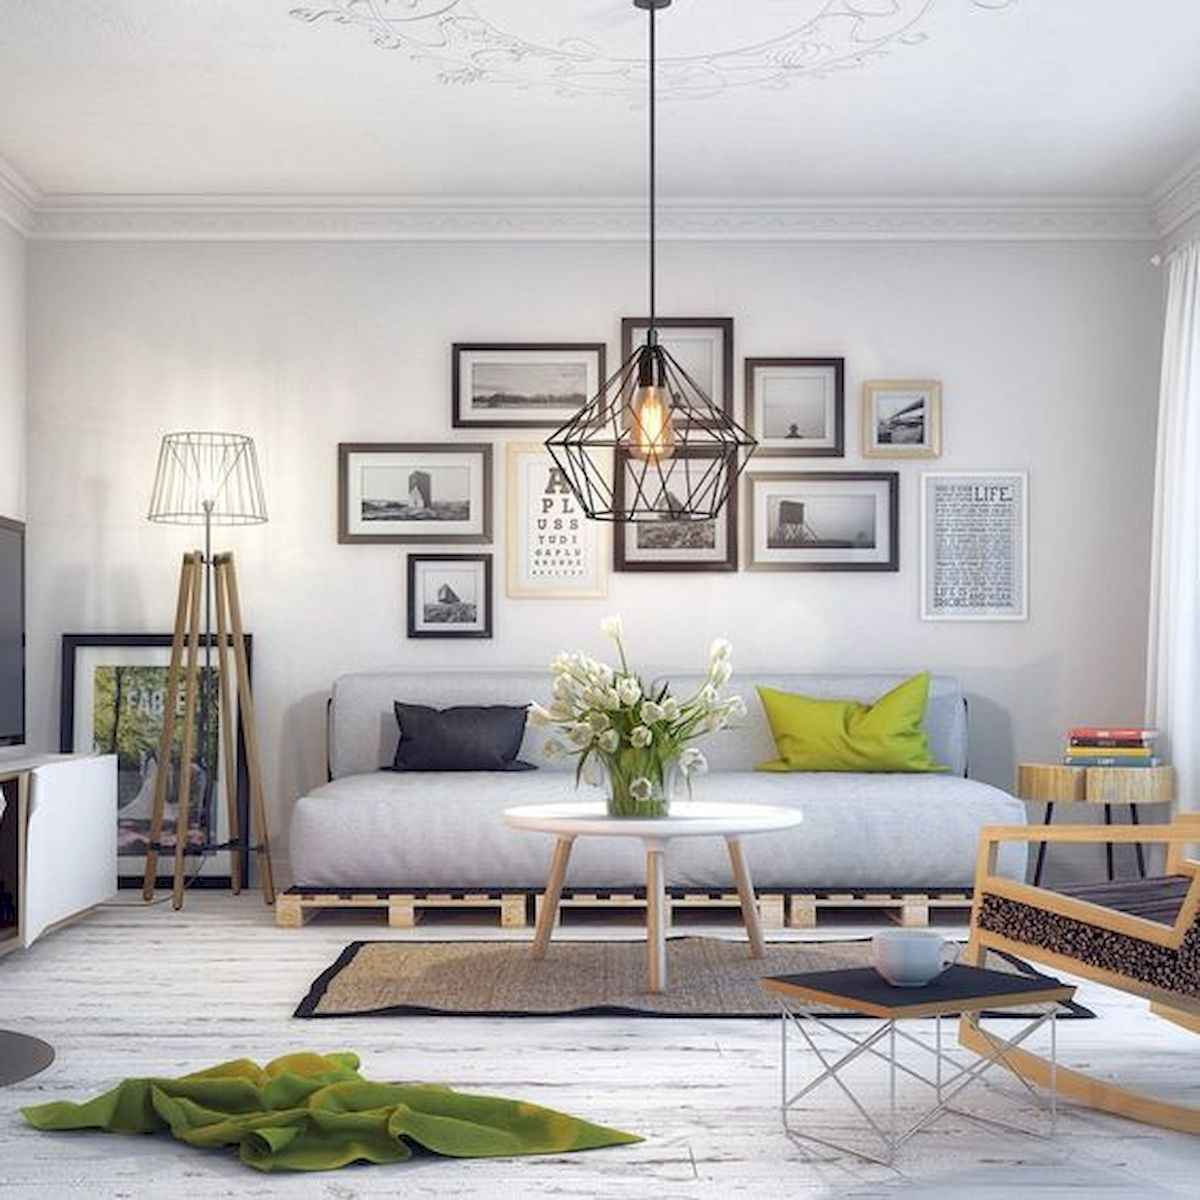 50+ Genius Small Living Room Decor Ideas And Remodel for Your First Apartment (7)